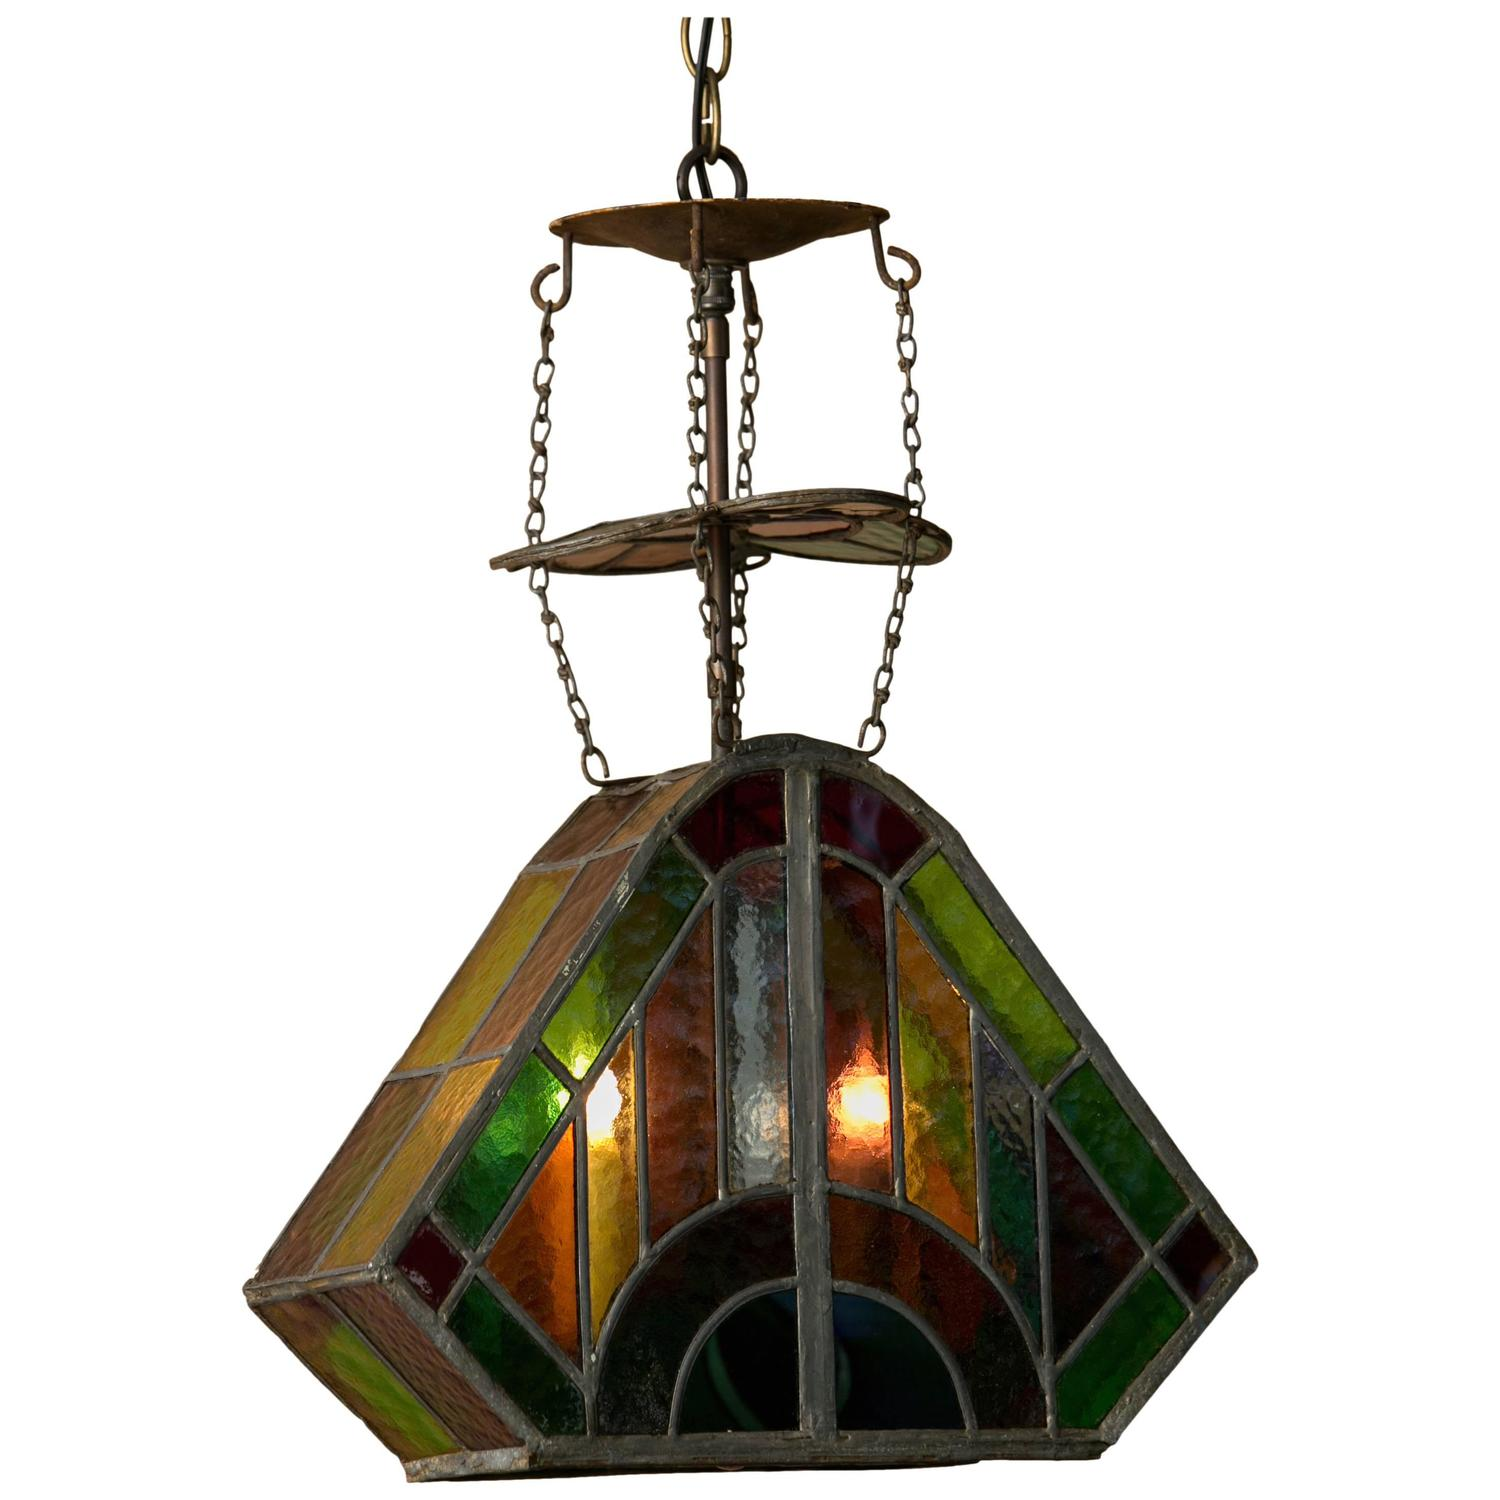 antique arts and crafts leaded stained glass lantern for sale at. Black Bedroom Furniture Sets. Home Design Ideas